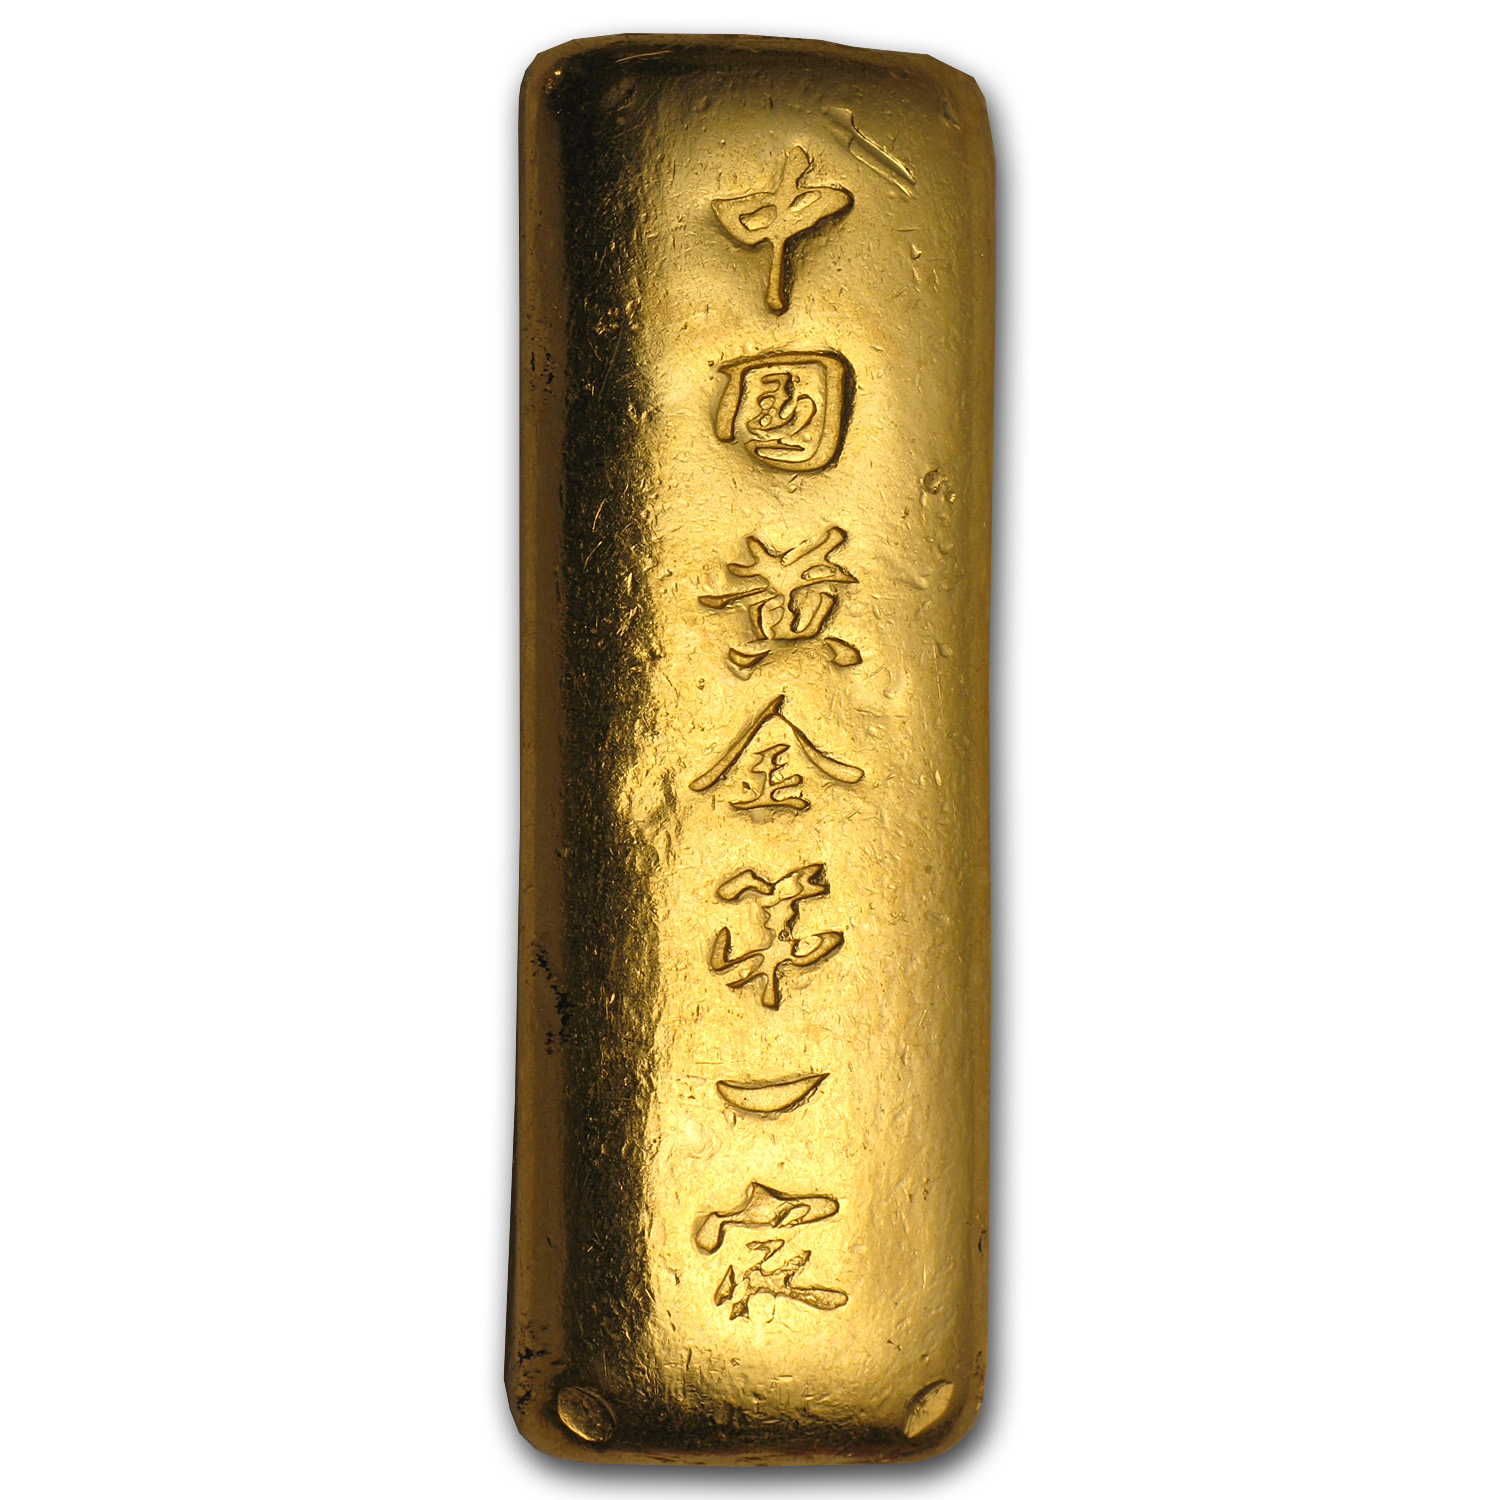 100 gram Gold Bar - Chinese (Tongue)